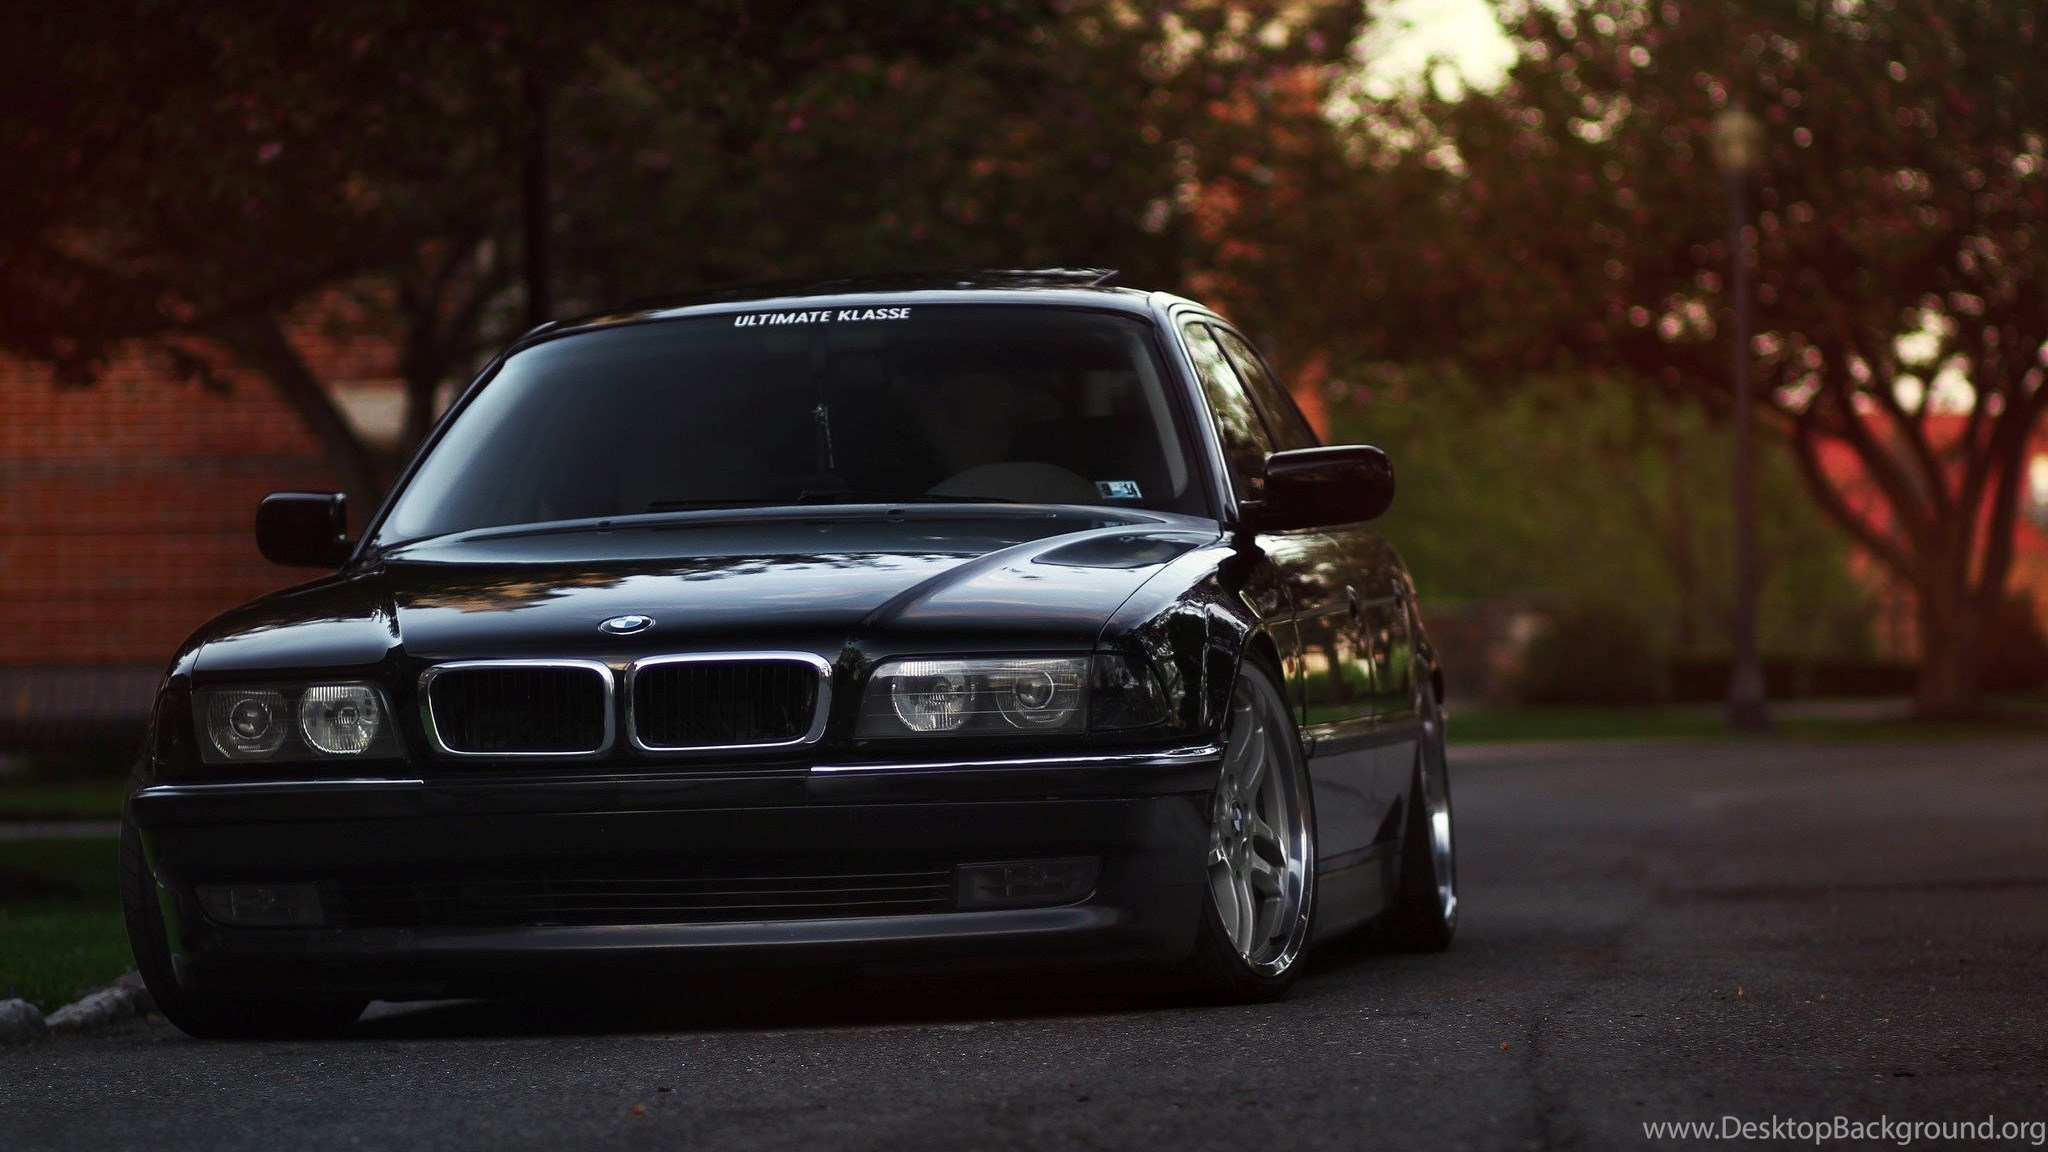 Bmw 7 Series E38 Black Wallpapers Desktop Background